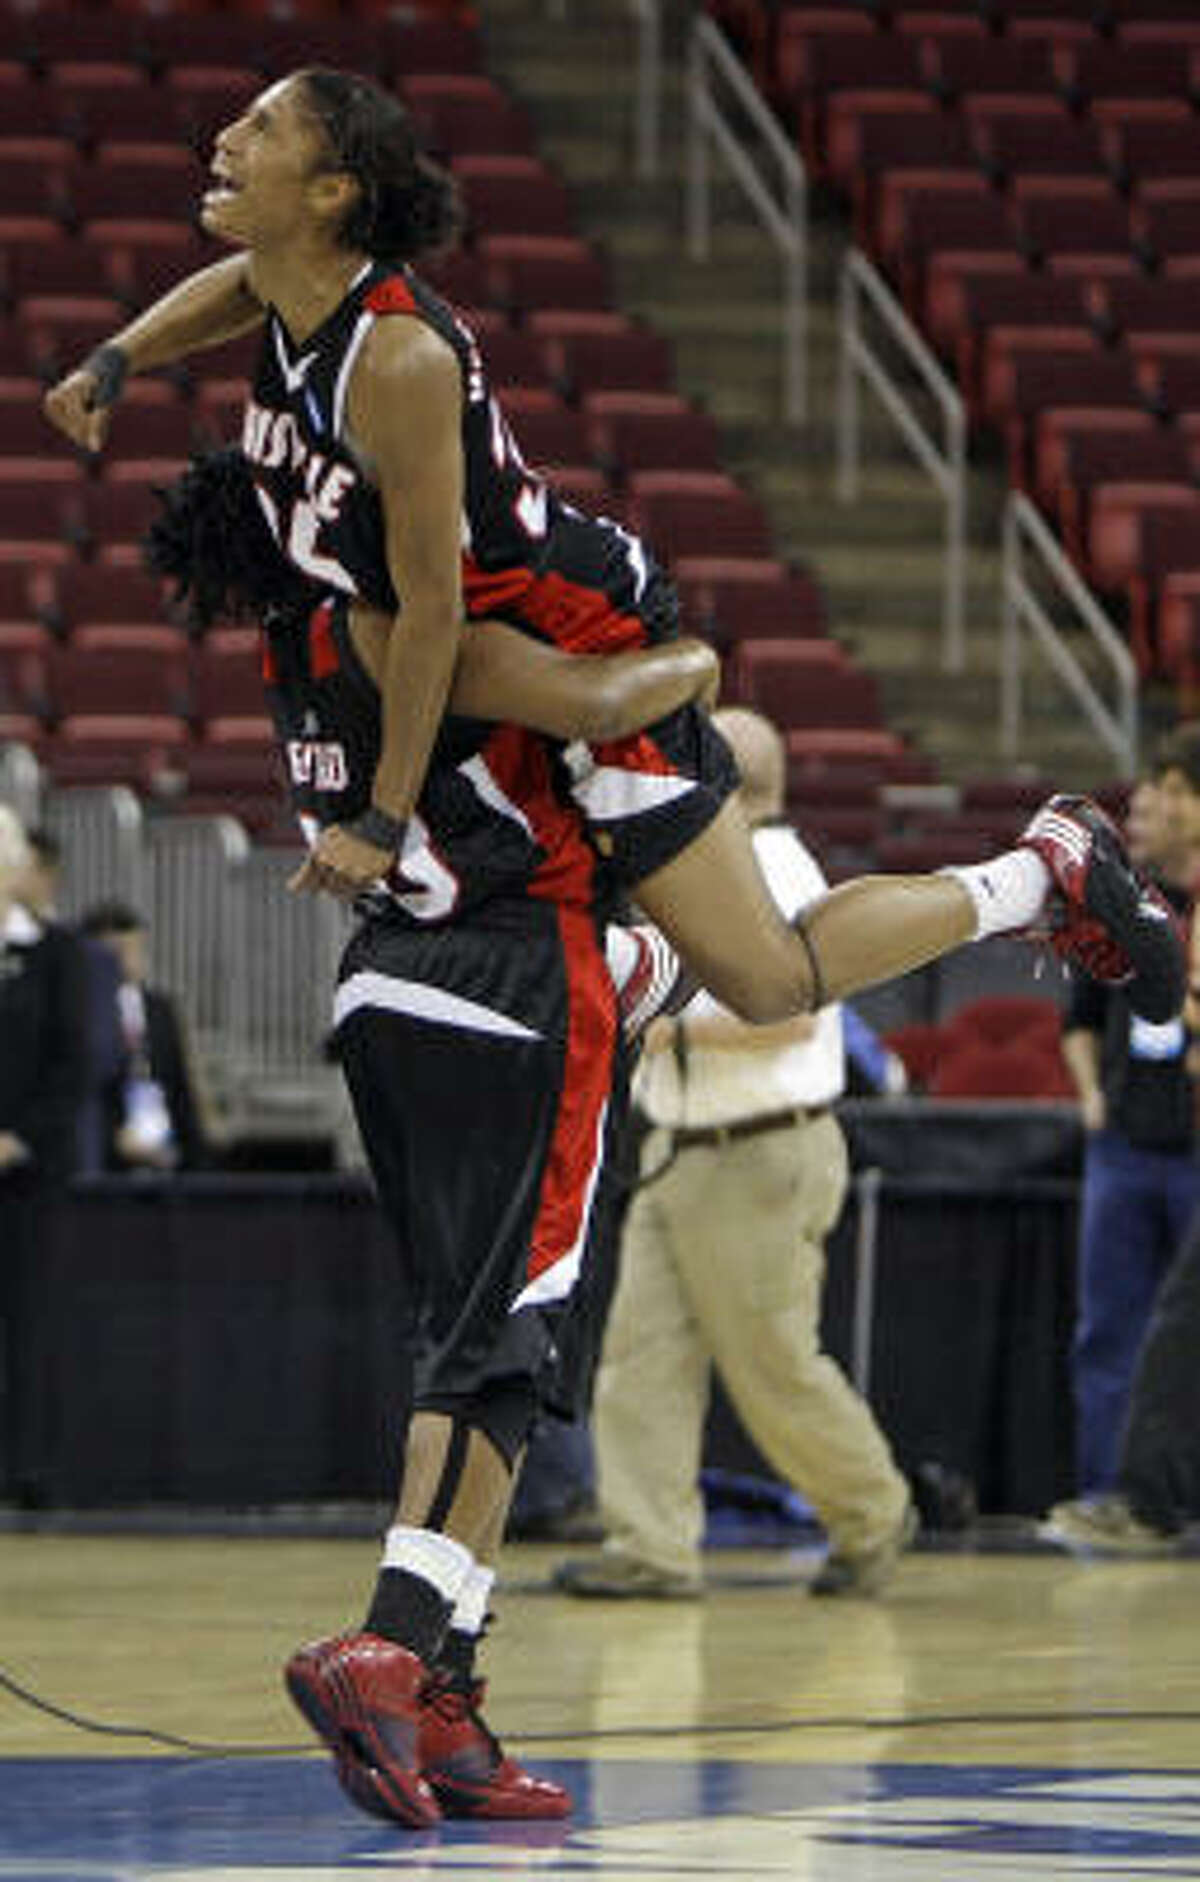 Raleigh (N.C.) Region, Regional Finals: Louisville 77, Maryland 60 Louisville's Deseree' Byrd lifts Angel McCoughtry following a women's NCAA college basketball tournament regional championship game.